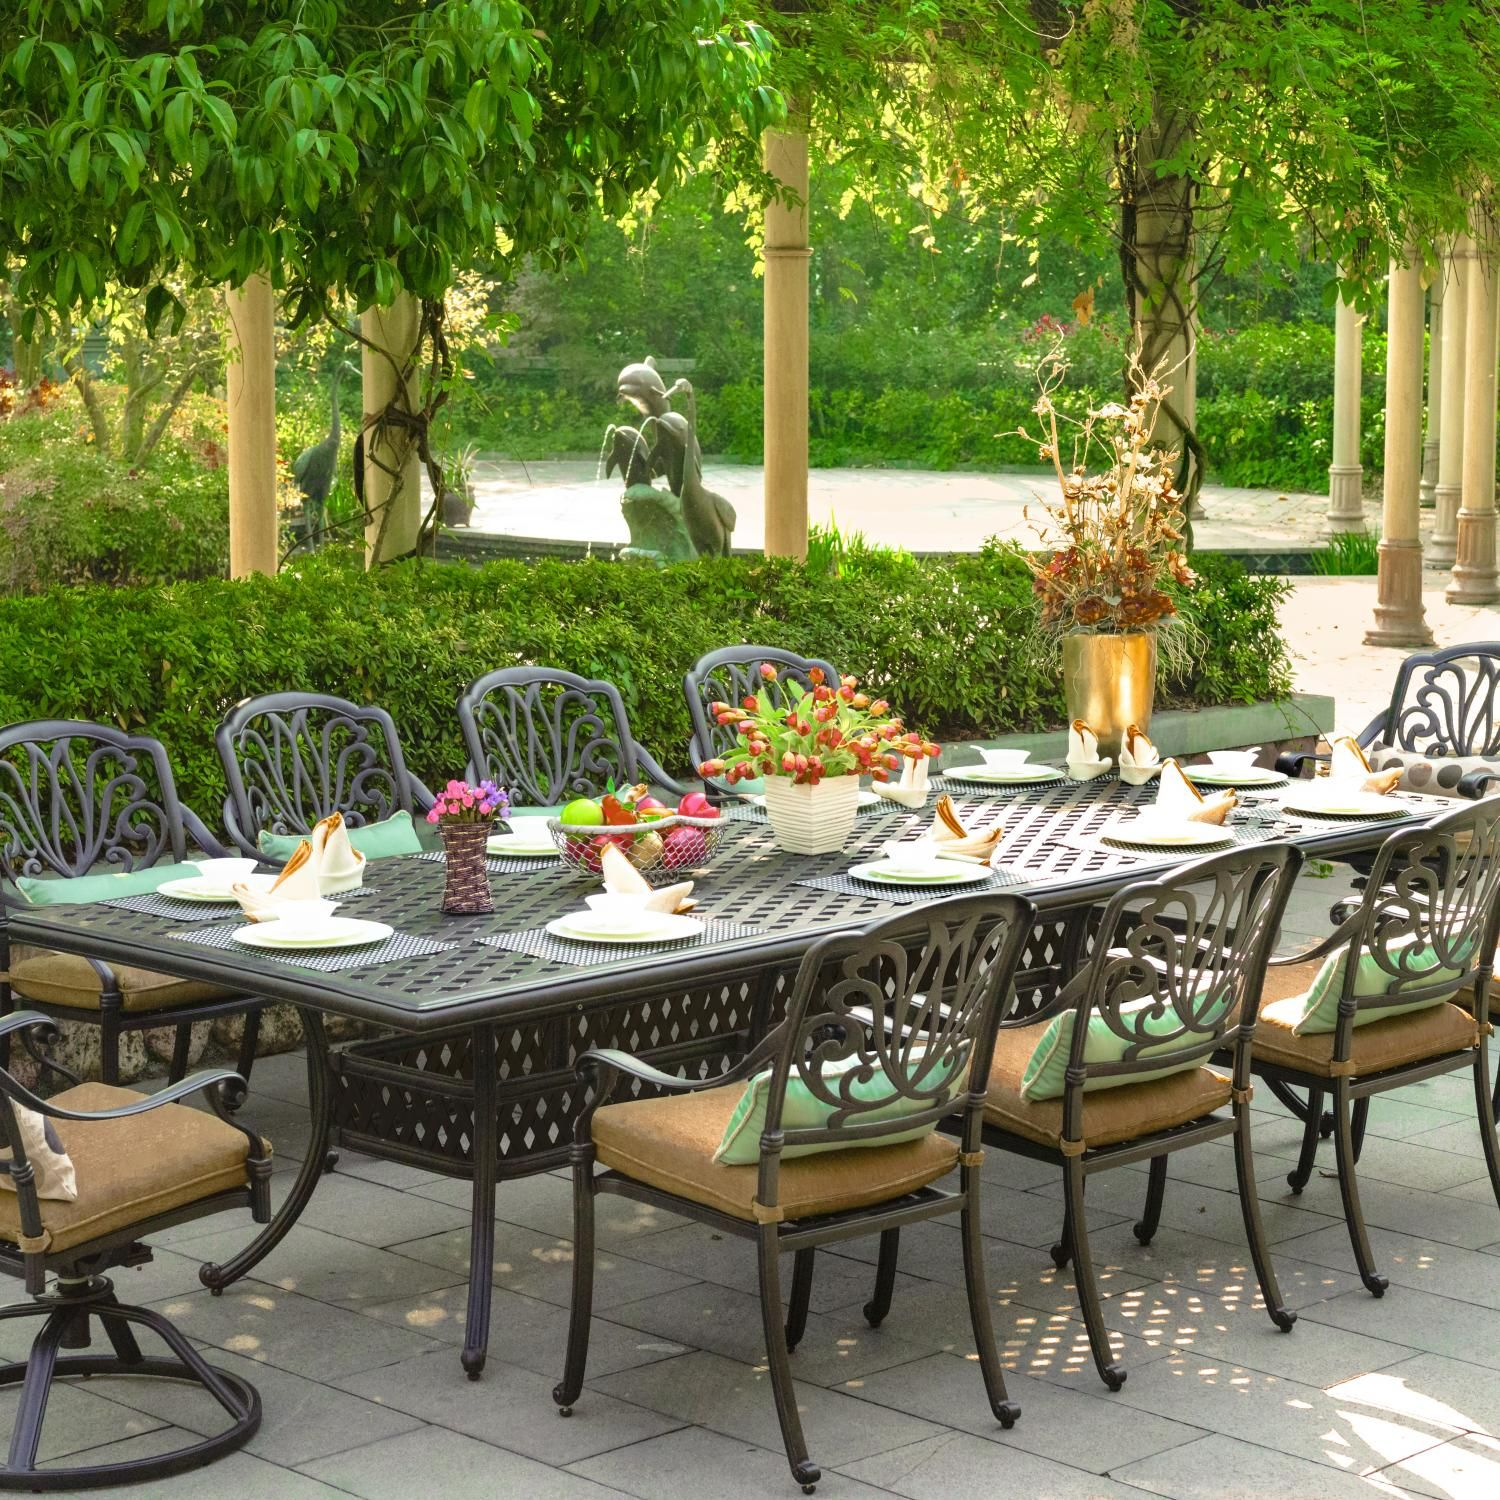 Add Elegance To Your Outdoor Dining With This Cast Aluminum Patio Set From Darlee The Table Accommodates 10 People A Patio Dining Set Aluminum Patio Patio Set